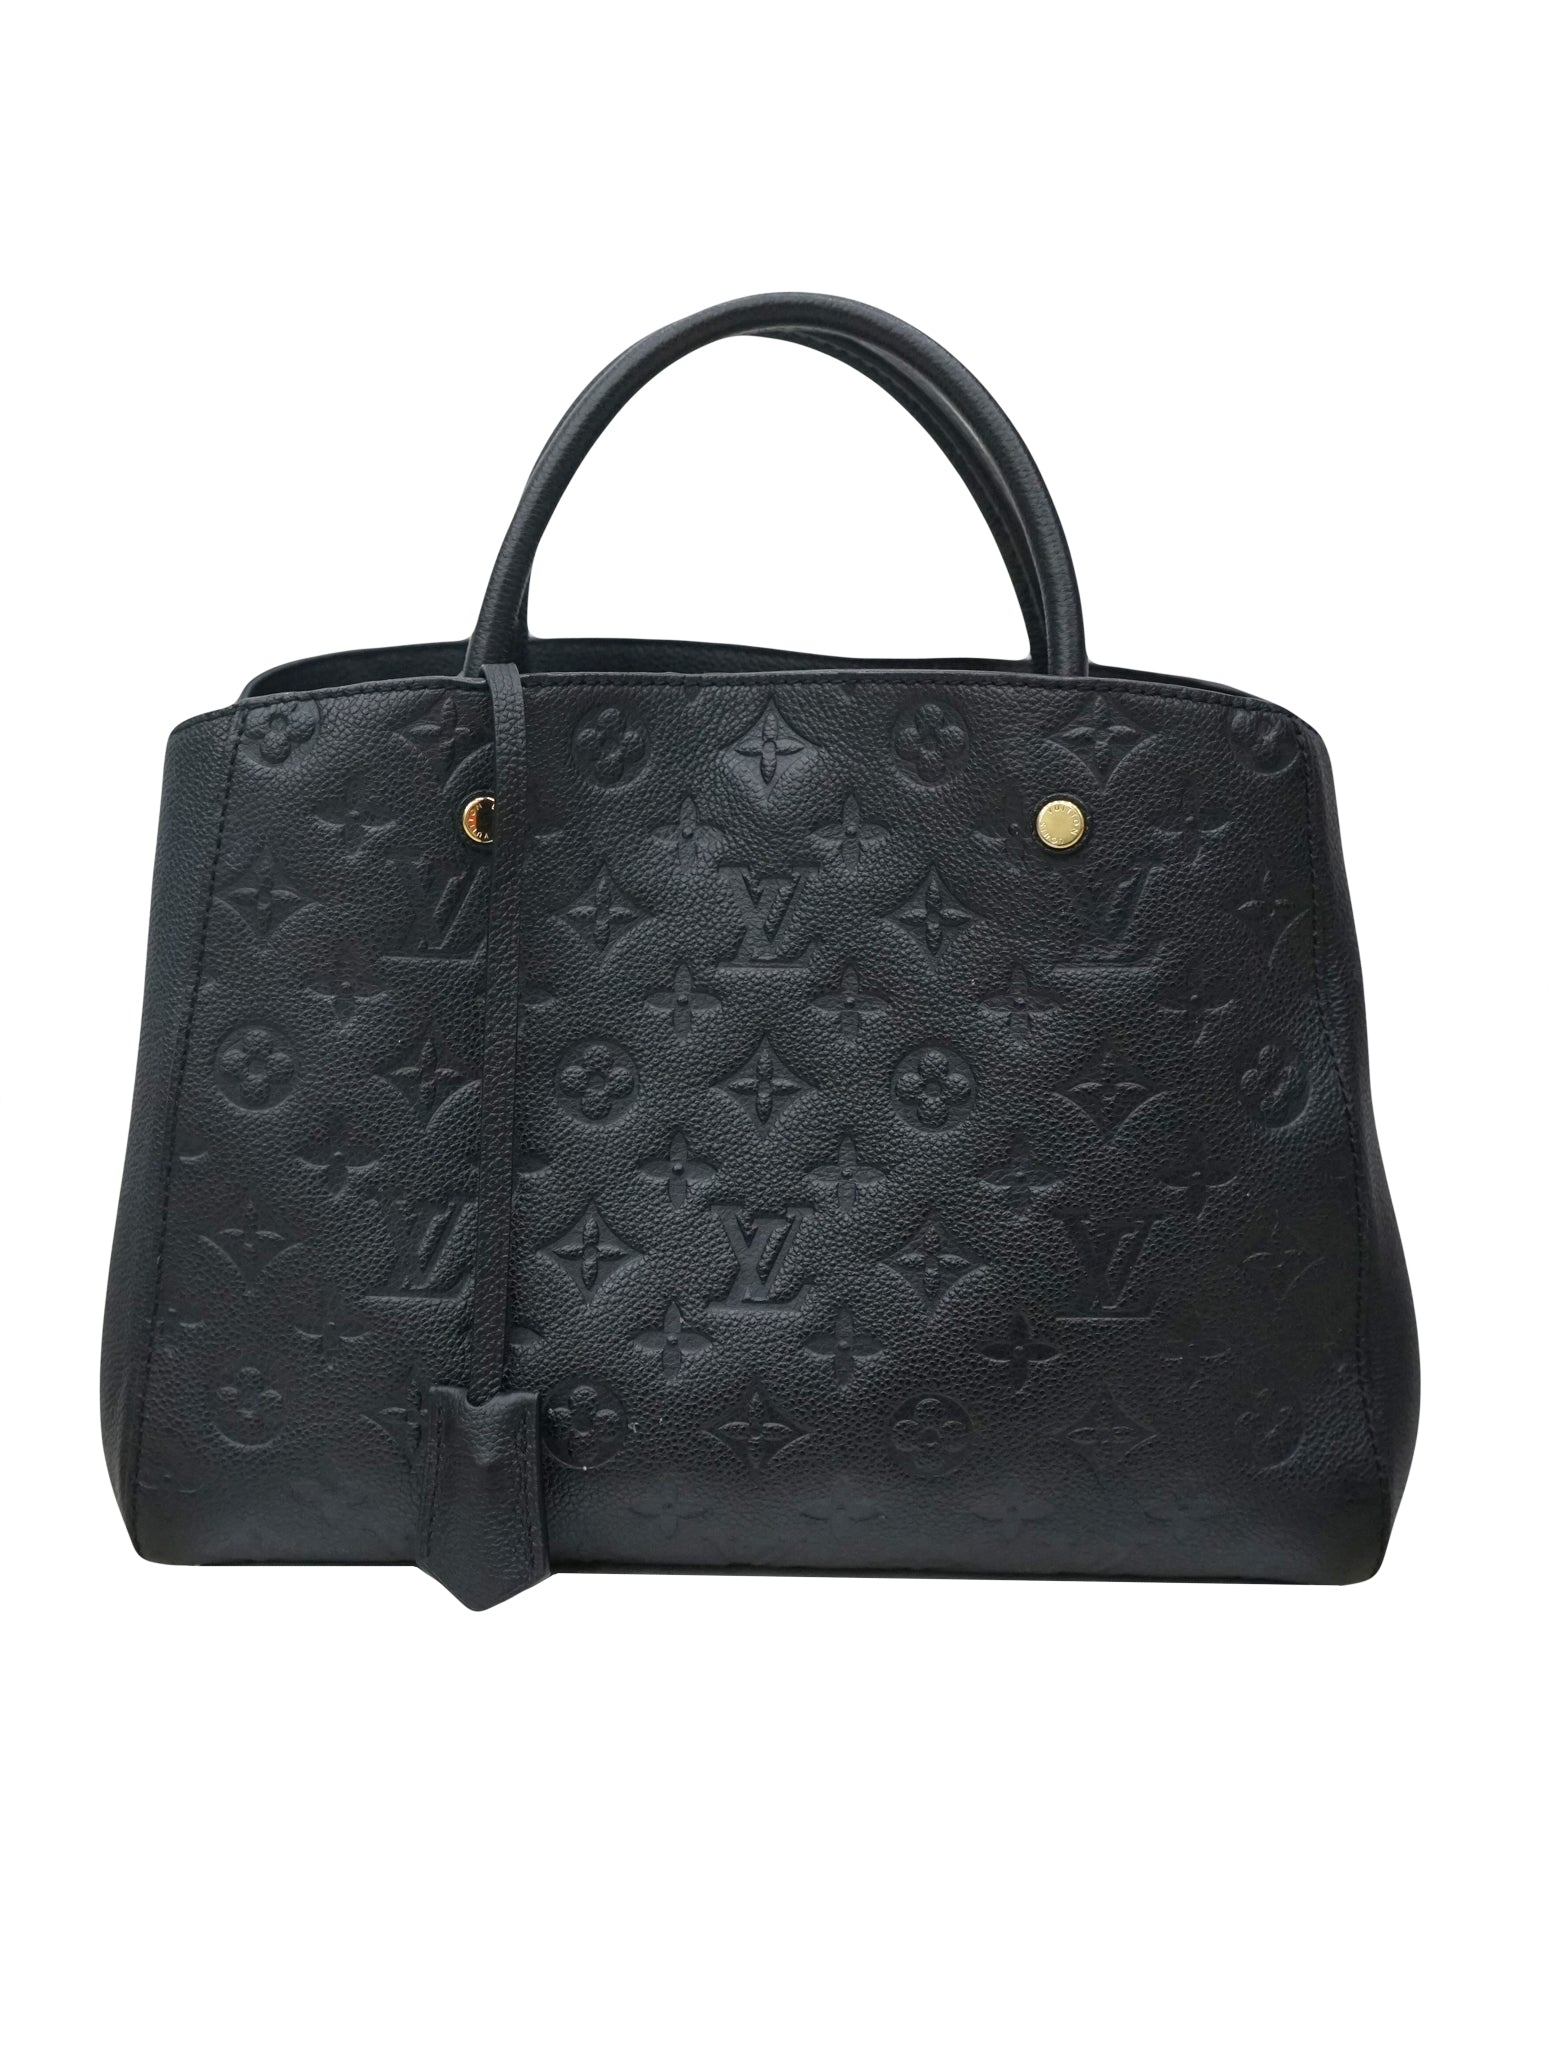 MONOGRAM EMPREINTE MONTAIGNE BAG